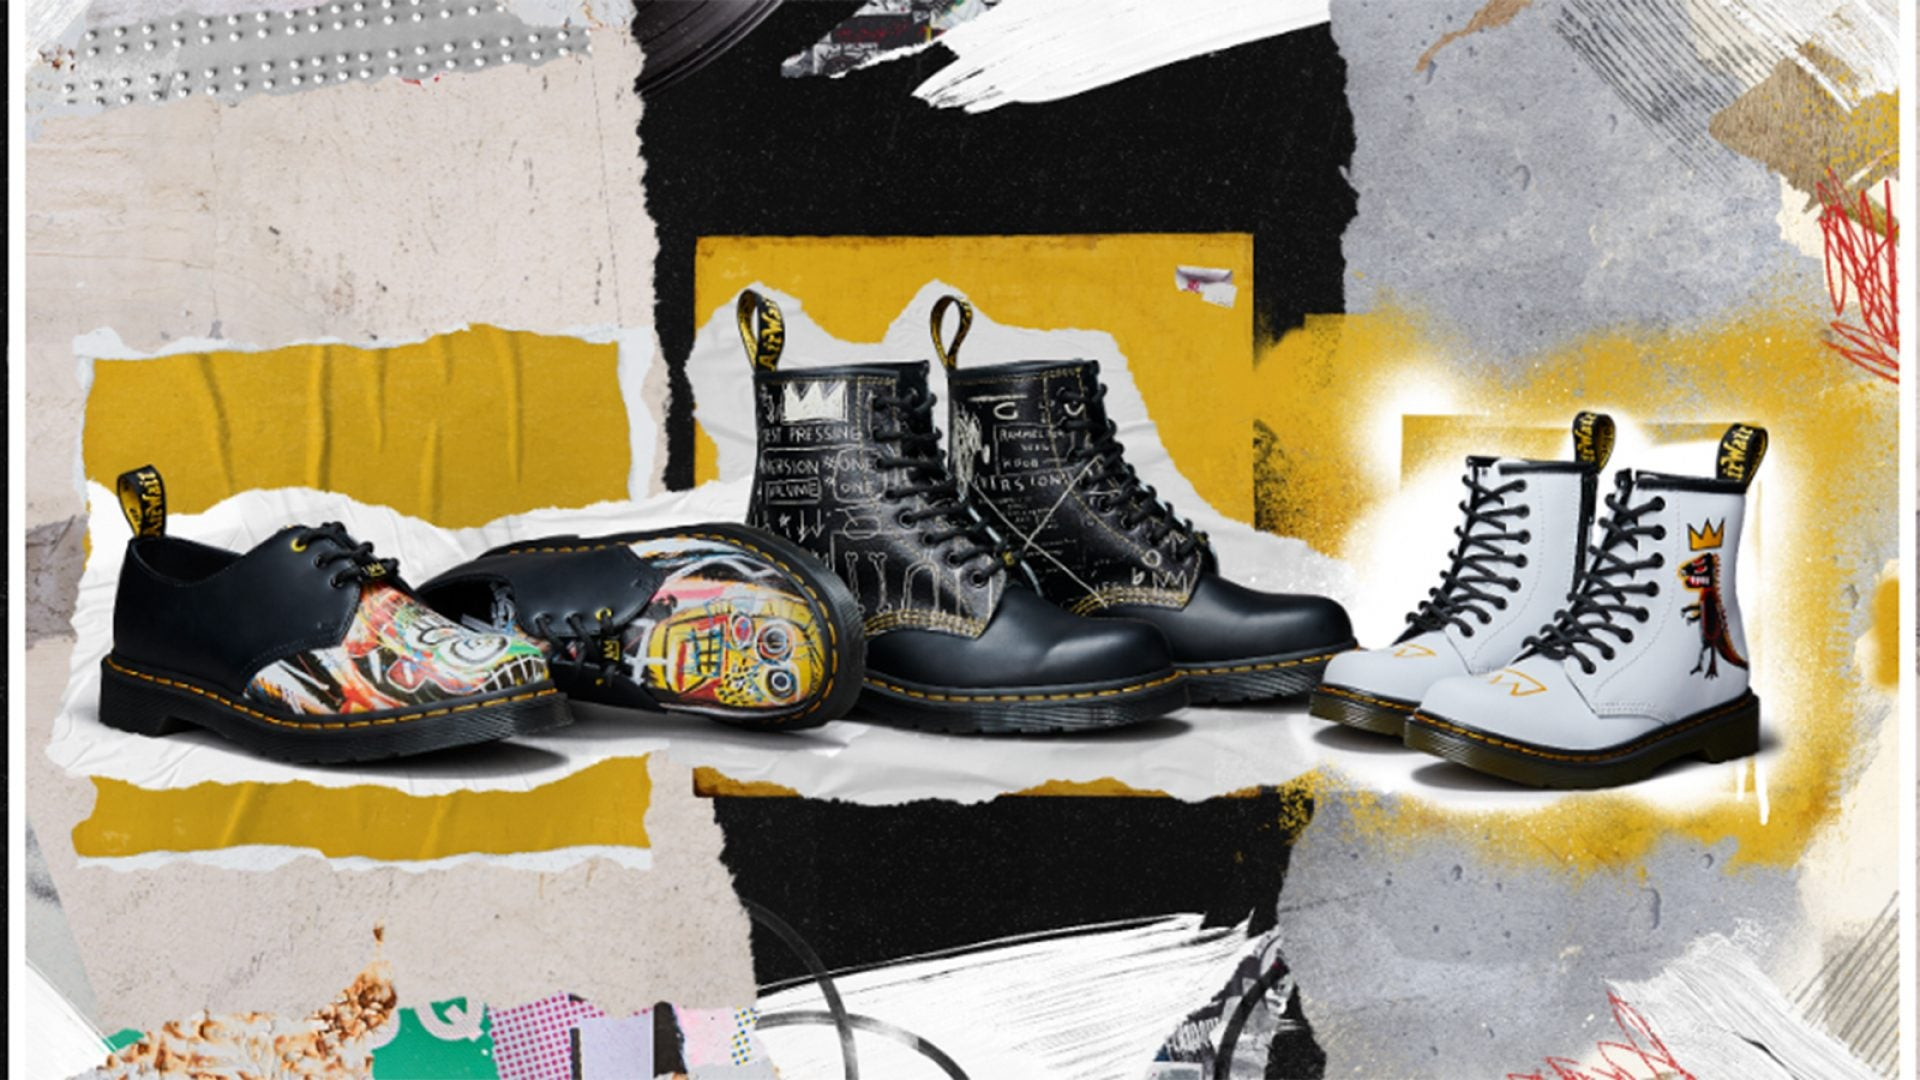 Dr. Martens Launches Collection With Jean-Michel Basquiat